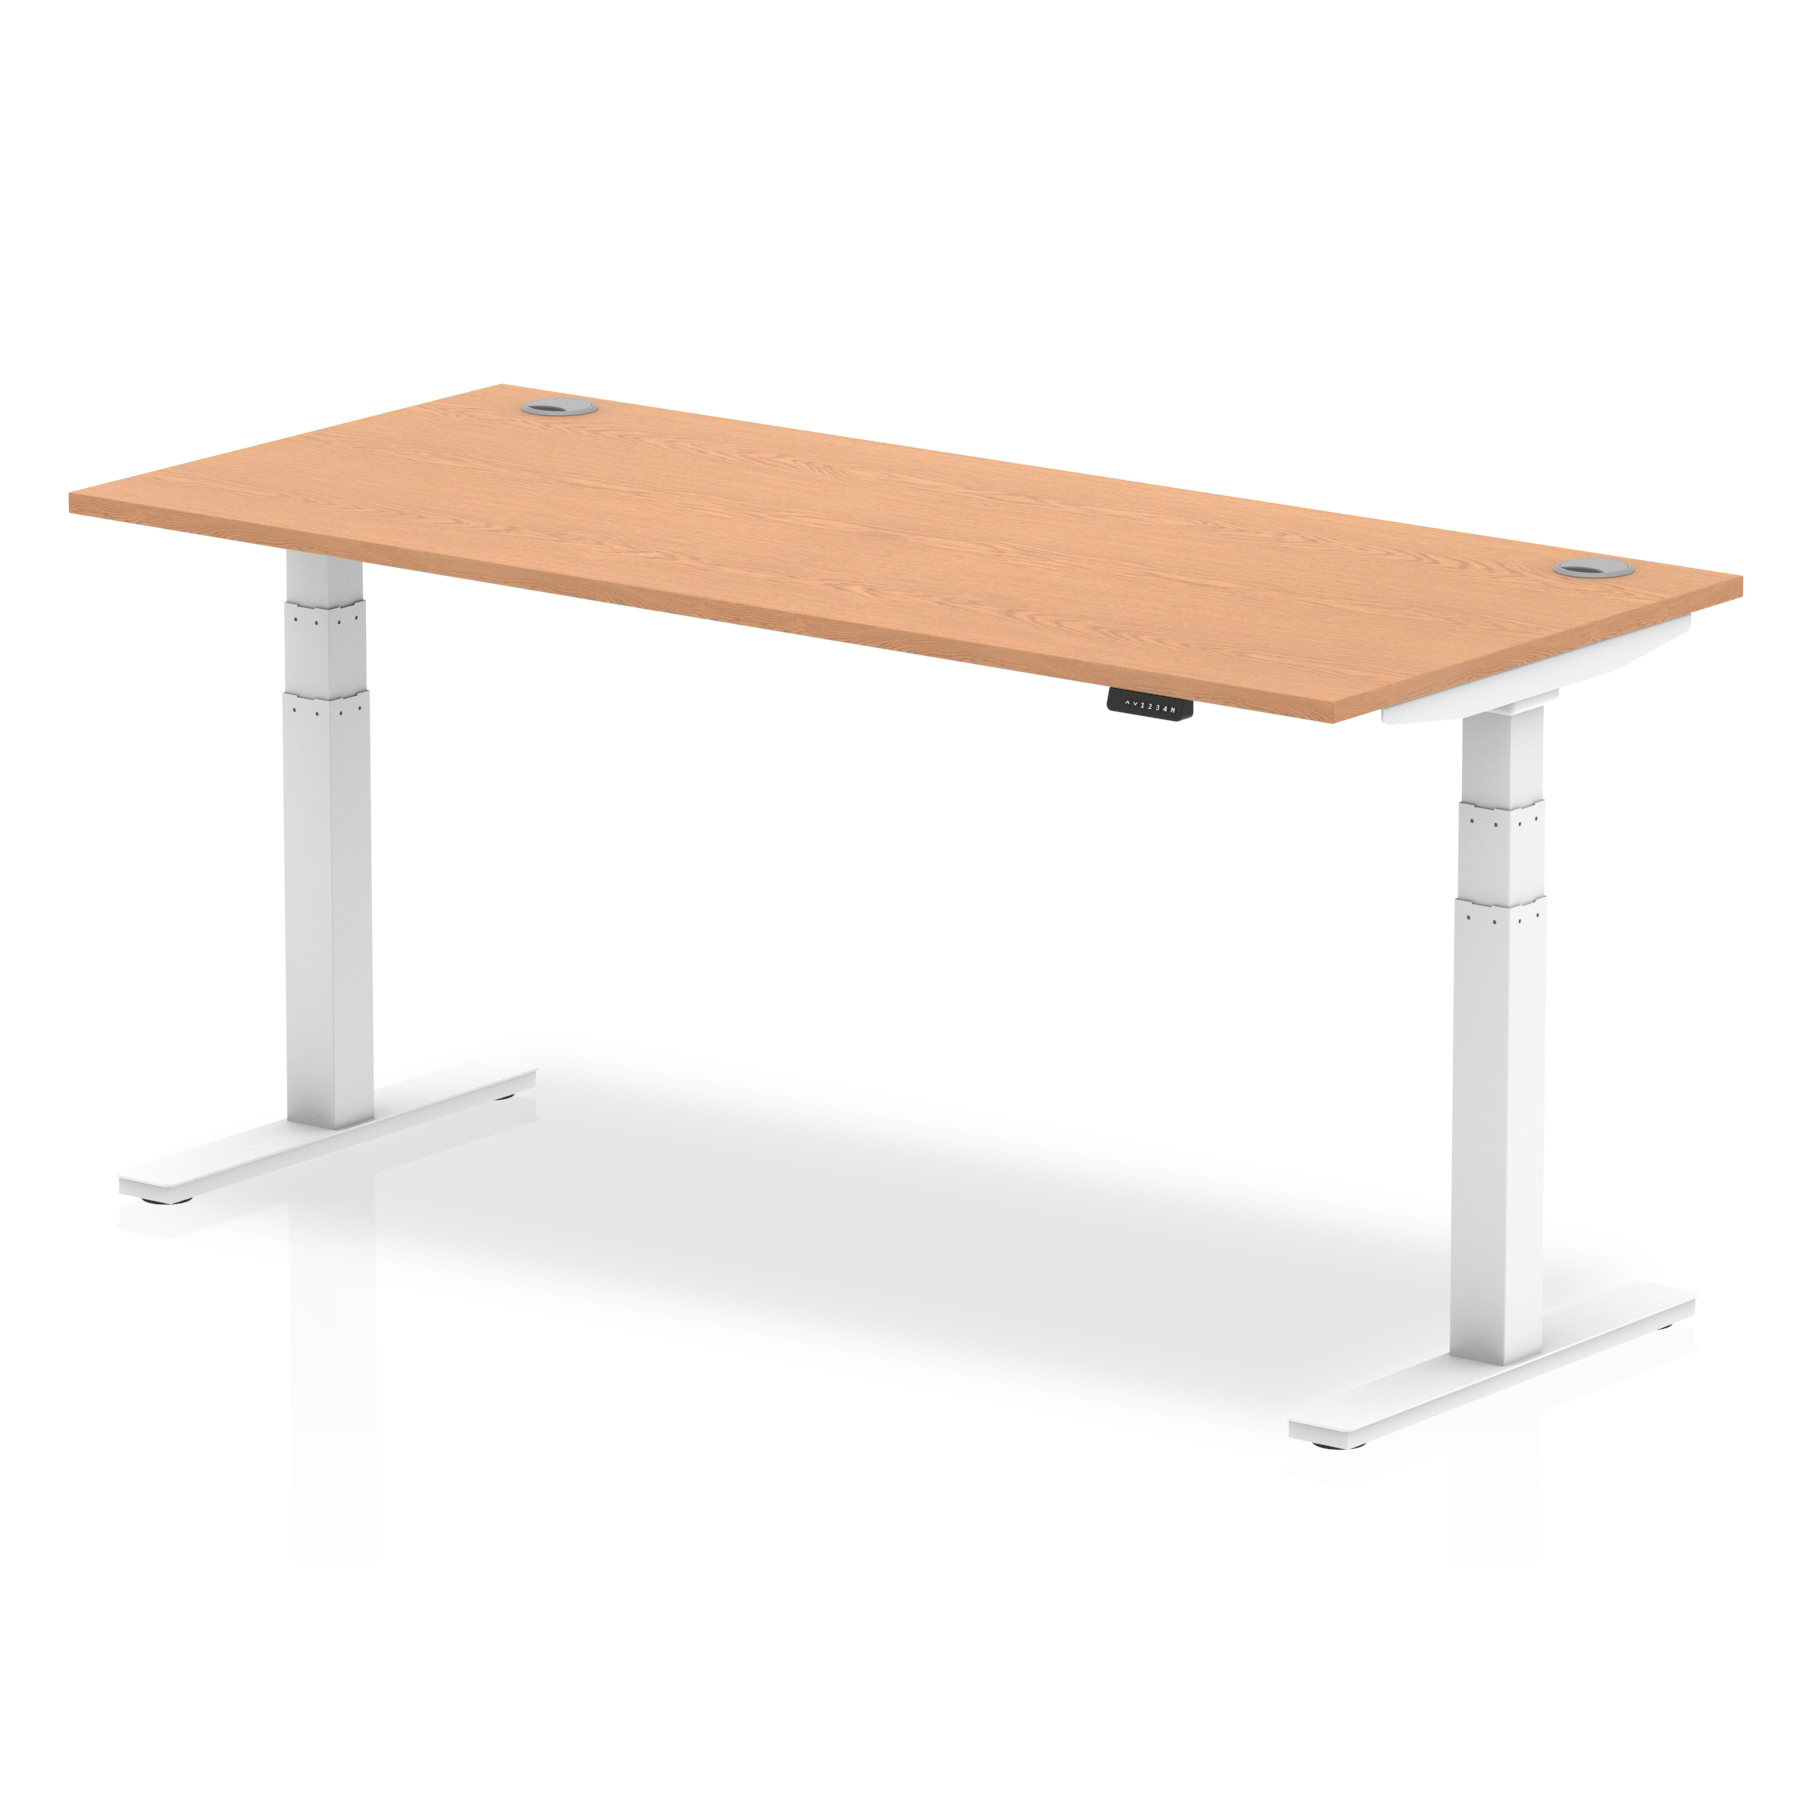 Trexus Sit Stand Desk With Cable Ports White Legs 1800x800mm Oak Ref HA01120